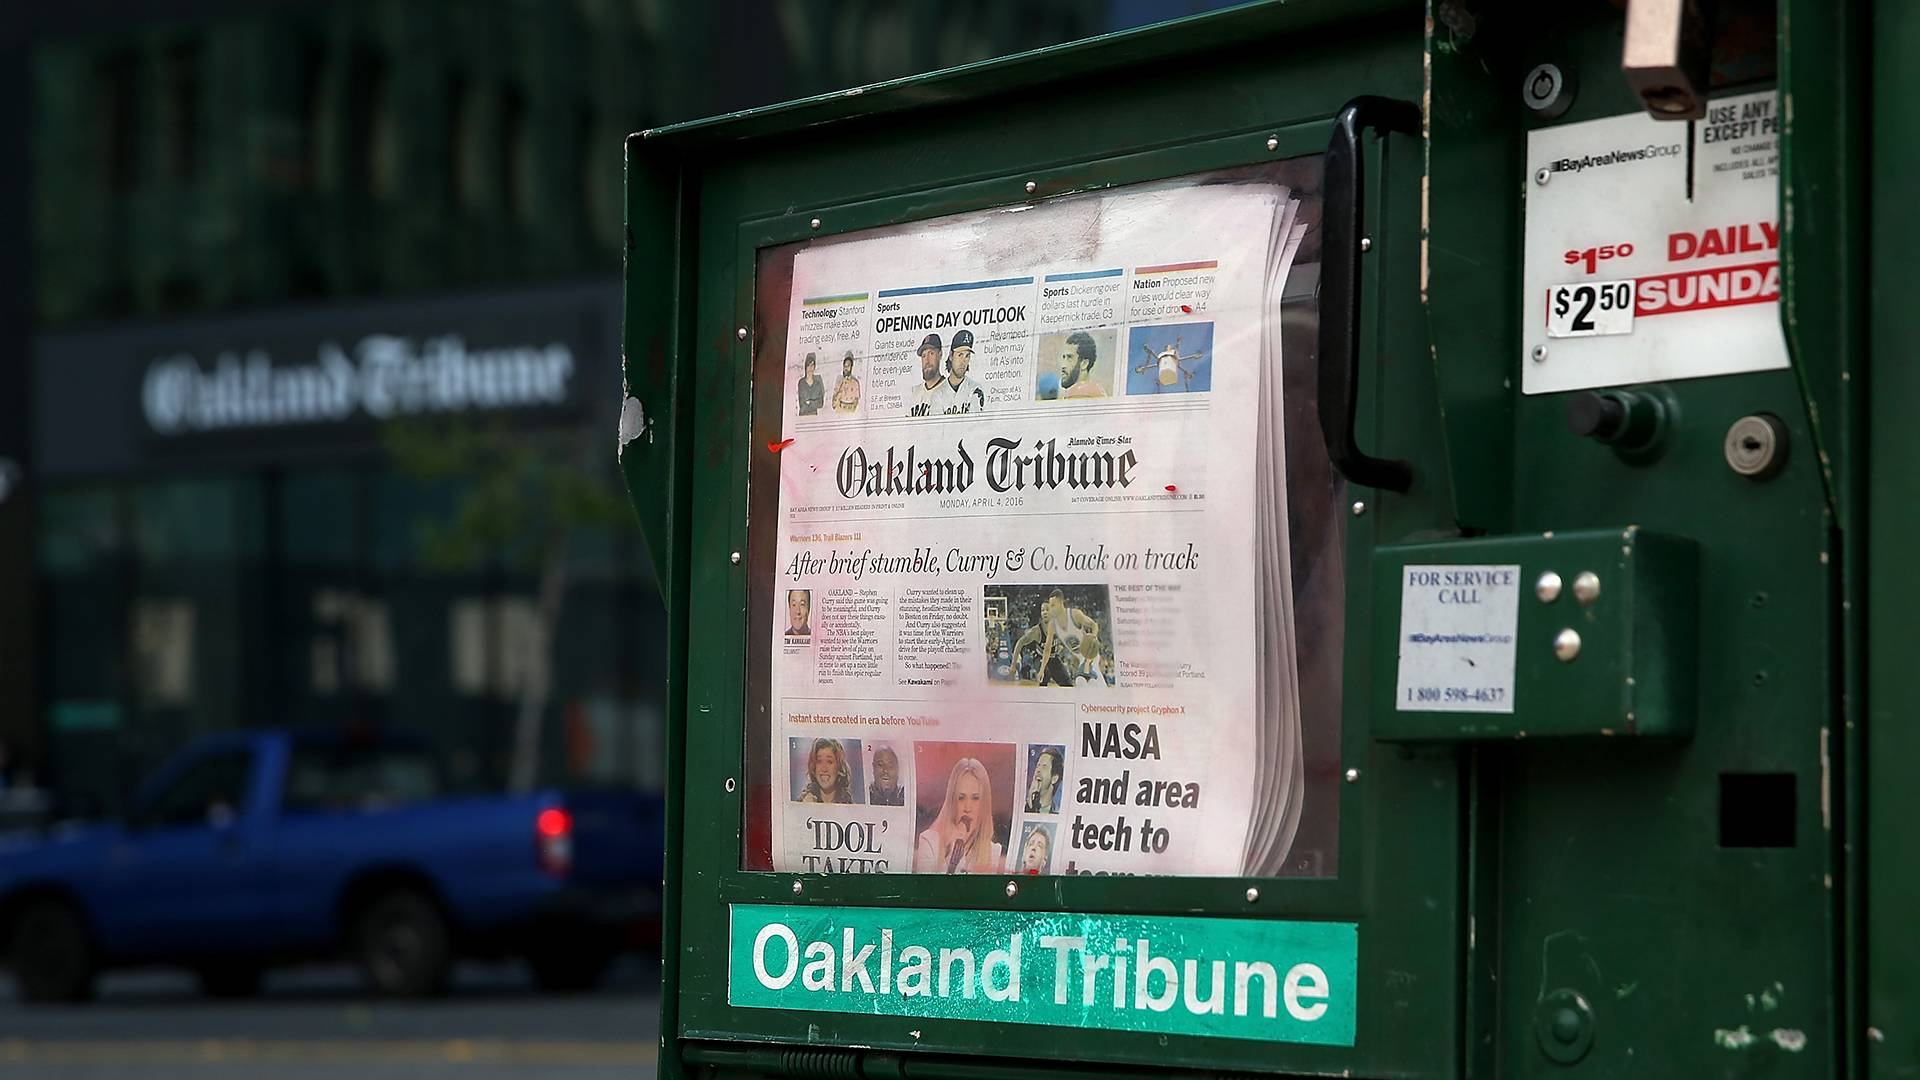 The final edition of the Oakland Tribune is displayed in a newspaper rack in front of the Oakland Tribune offices on April 4, 2016. Justin Sullivan/Getty Images